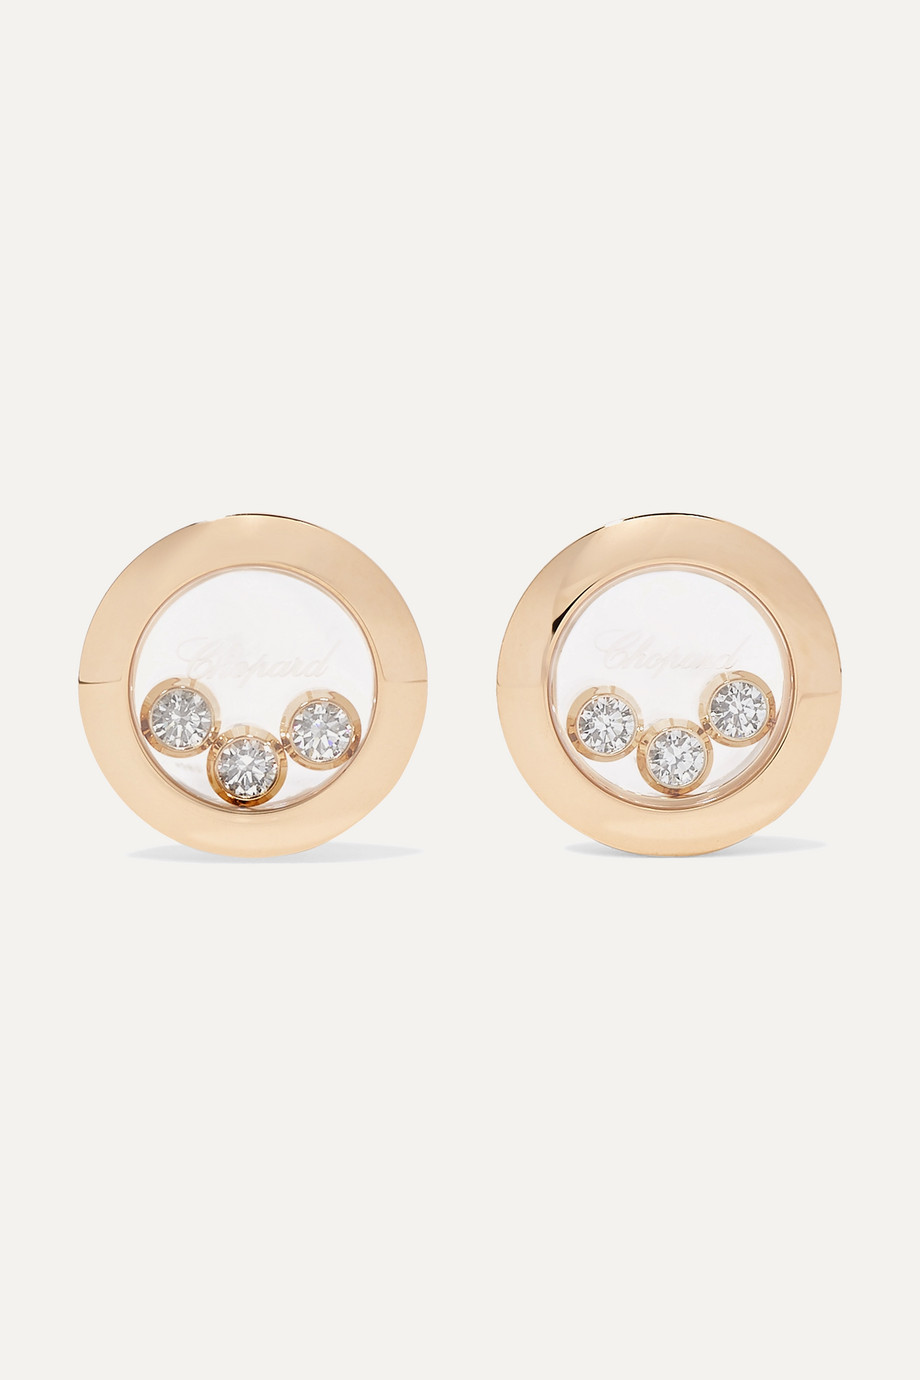 Chopard Boucles d'oreilles en or 18 carats et diamants Happy Diamonds - NET SUSTAIN